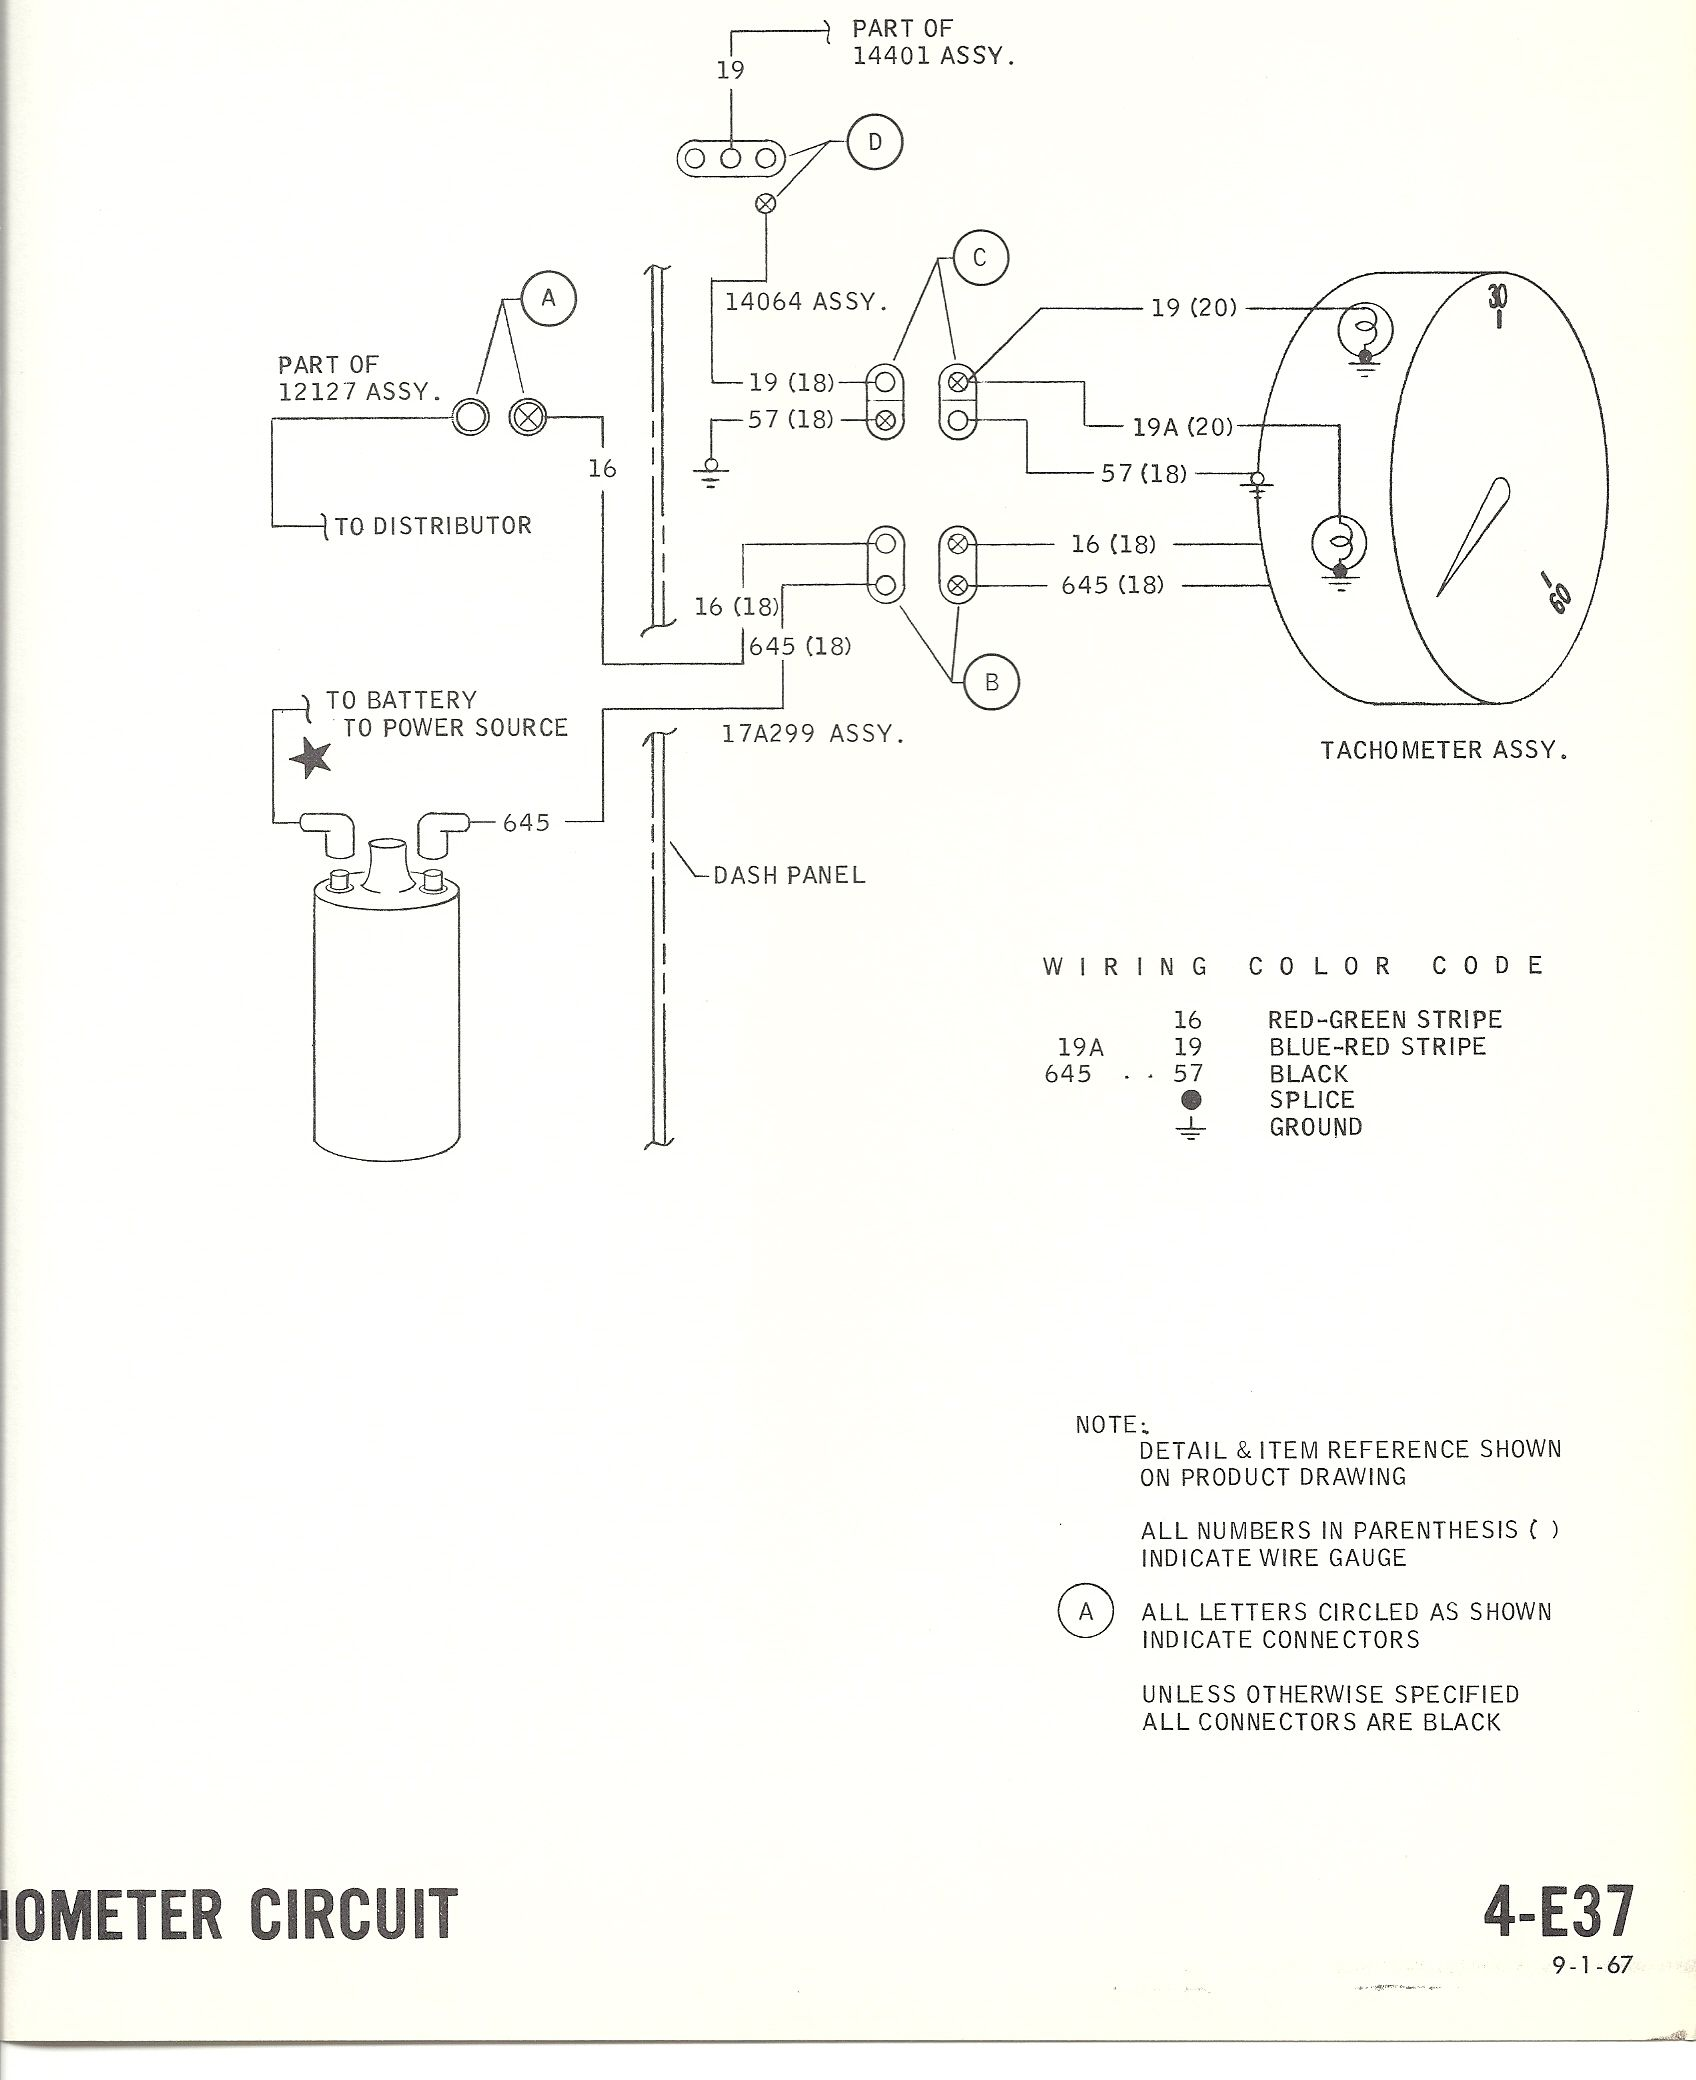 small resolution of 1975 911 tach wiring diagram wiring diagram paper 1975 911 tach wiring diagram